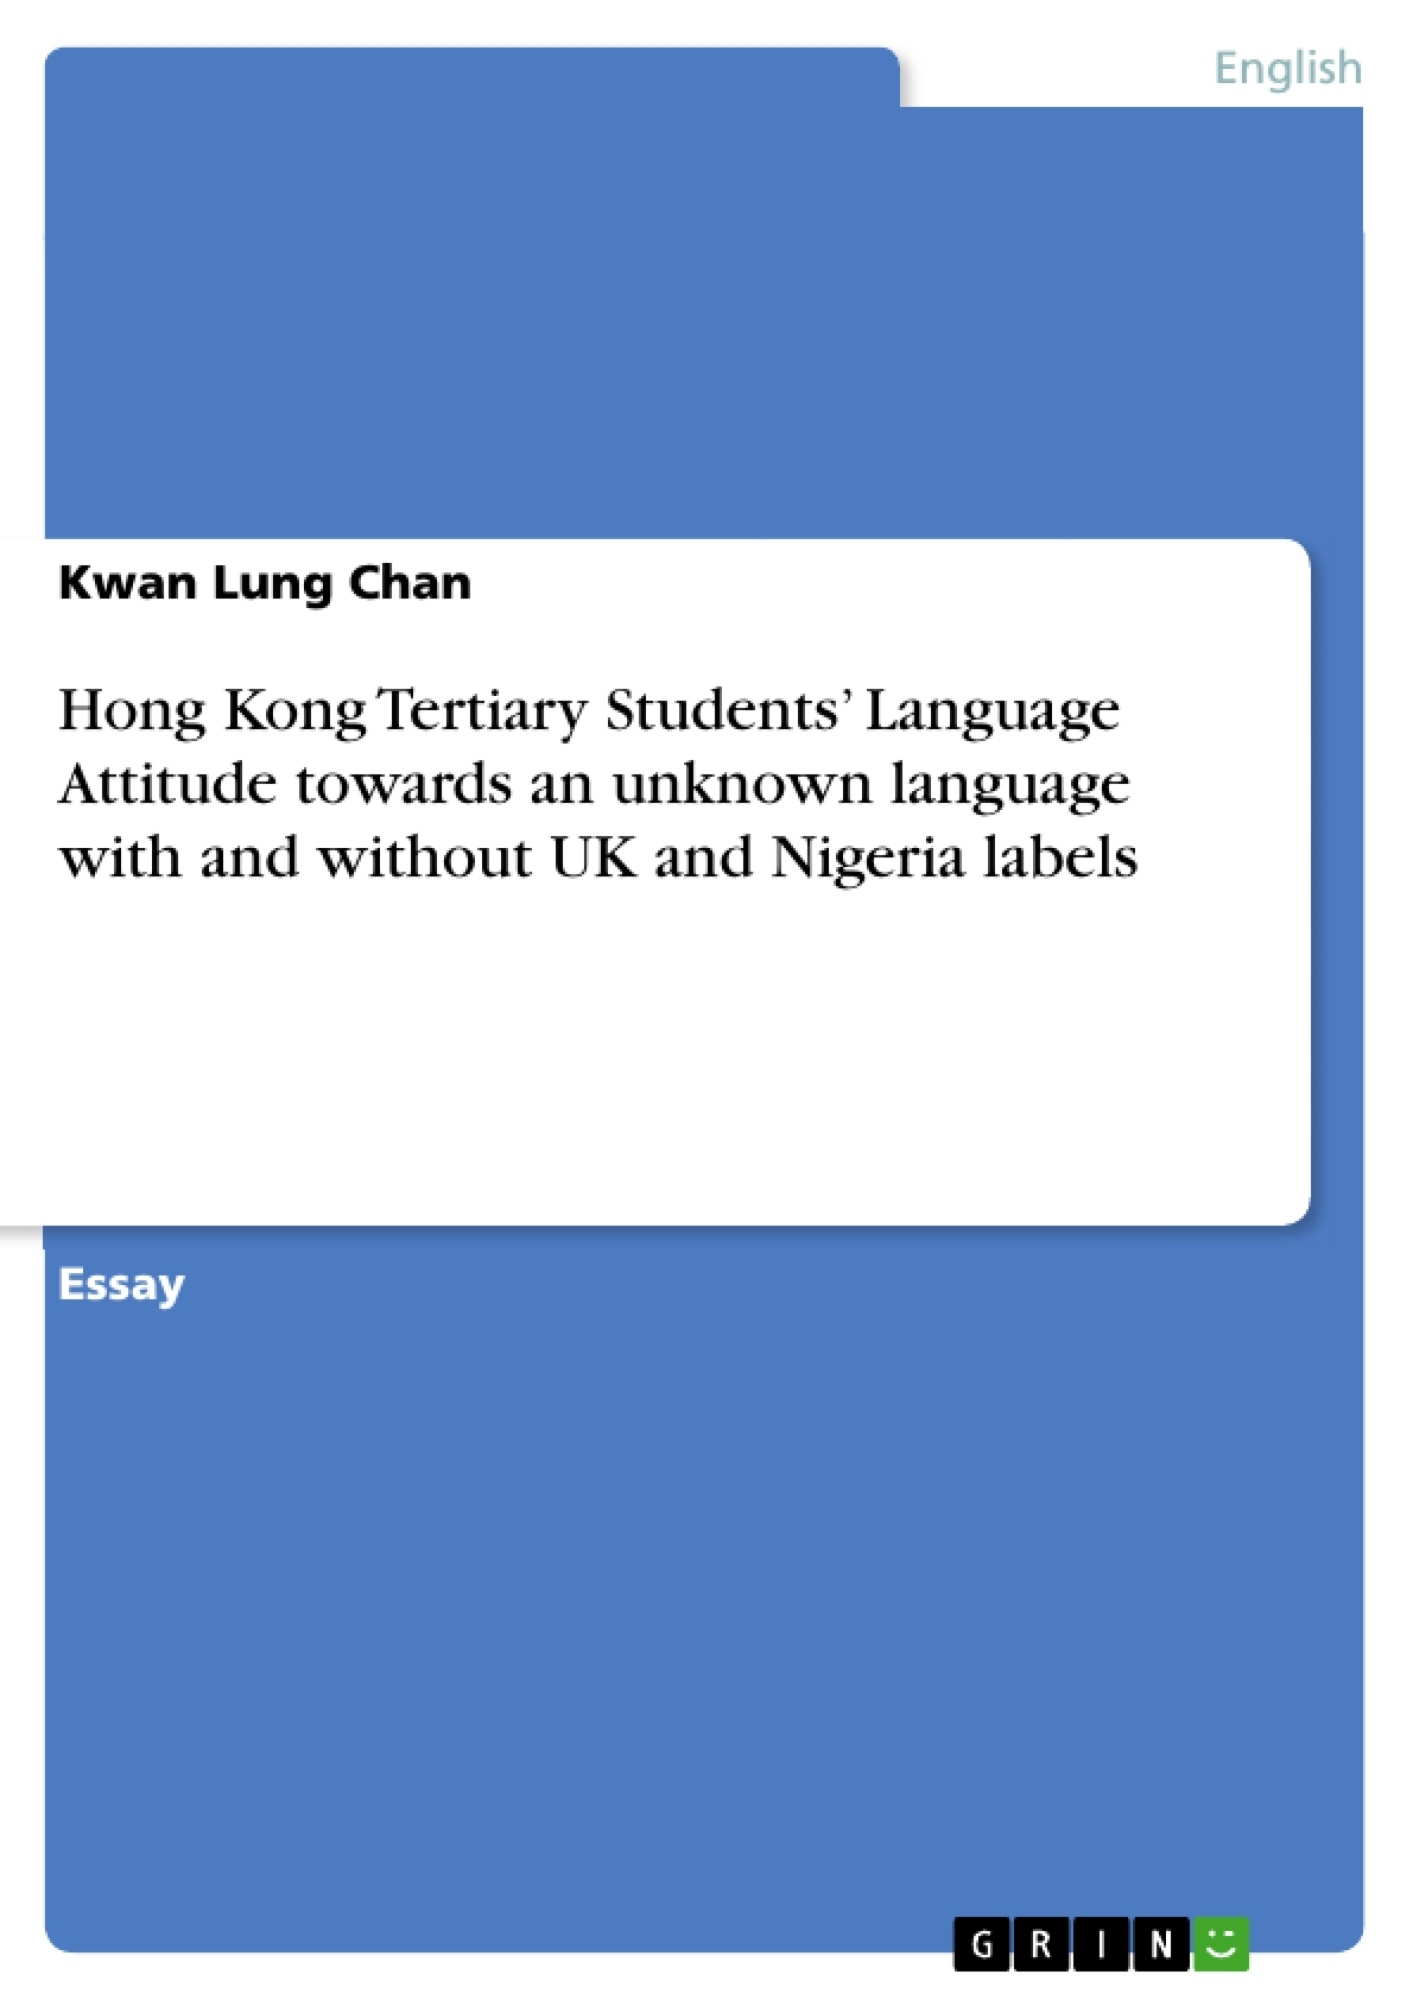 Title: Hong Kong Tertiary Students' Language Attitude towards an unknown language with and without UK and Nigeria labels